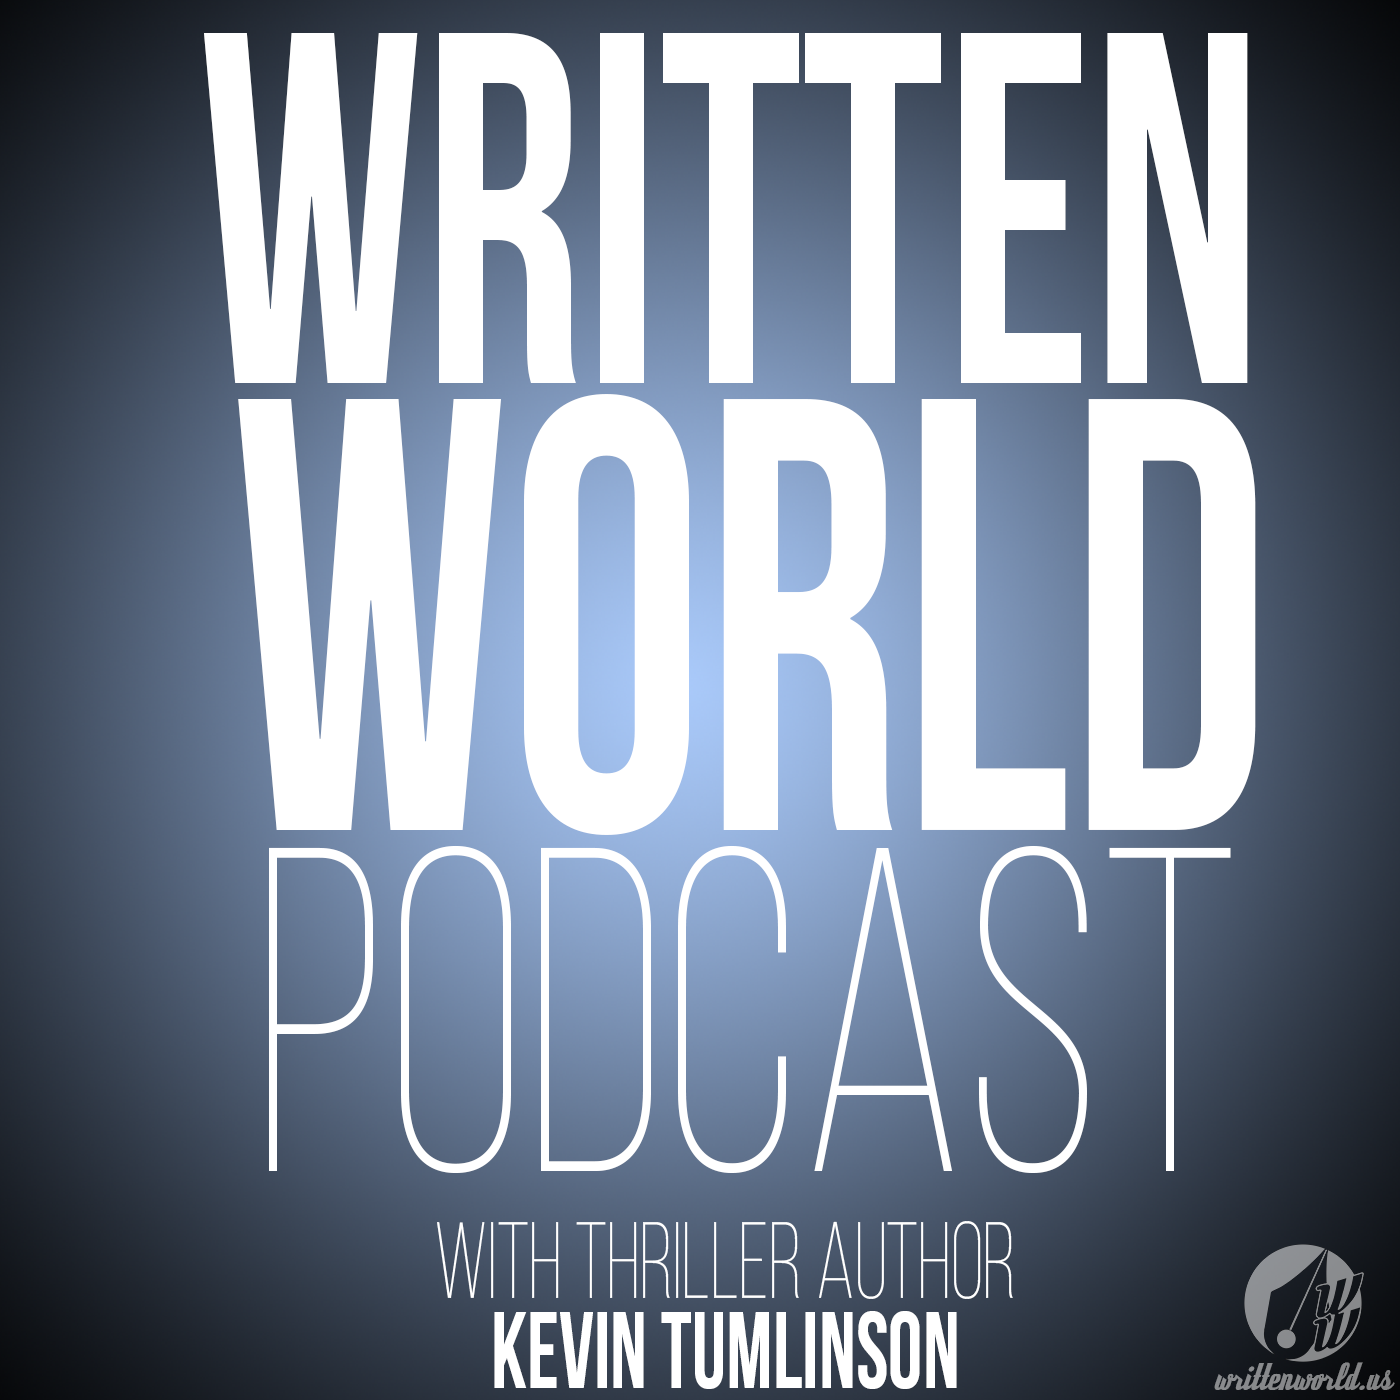 It's a weird world out there. - Hidden secrets. Unusual people. Quirky history. Bestselling and Award-winning thriller author Kevin Tumlinson takes listeners on a journey into the Written World.